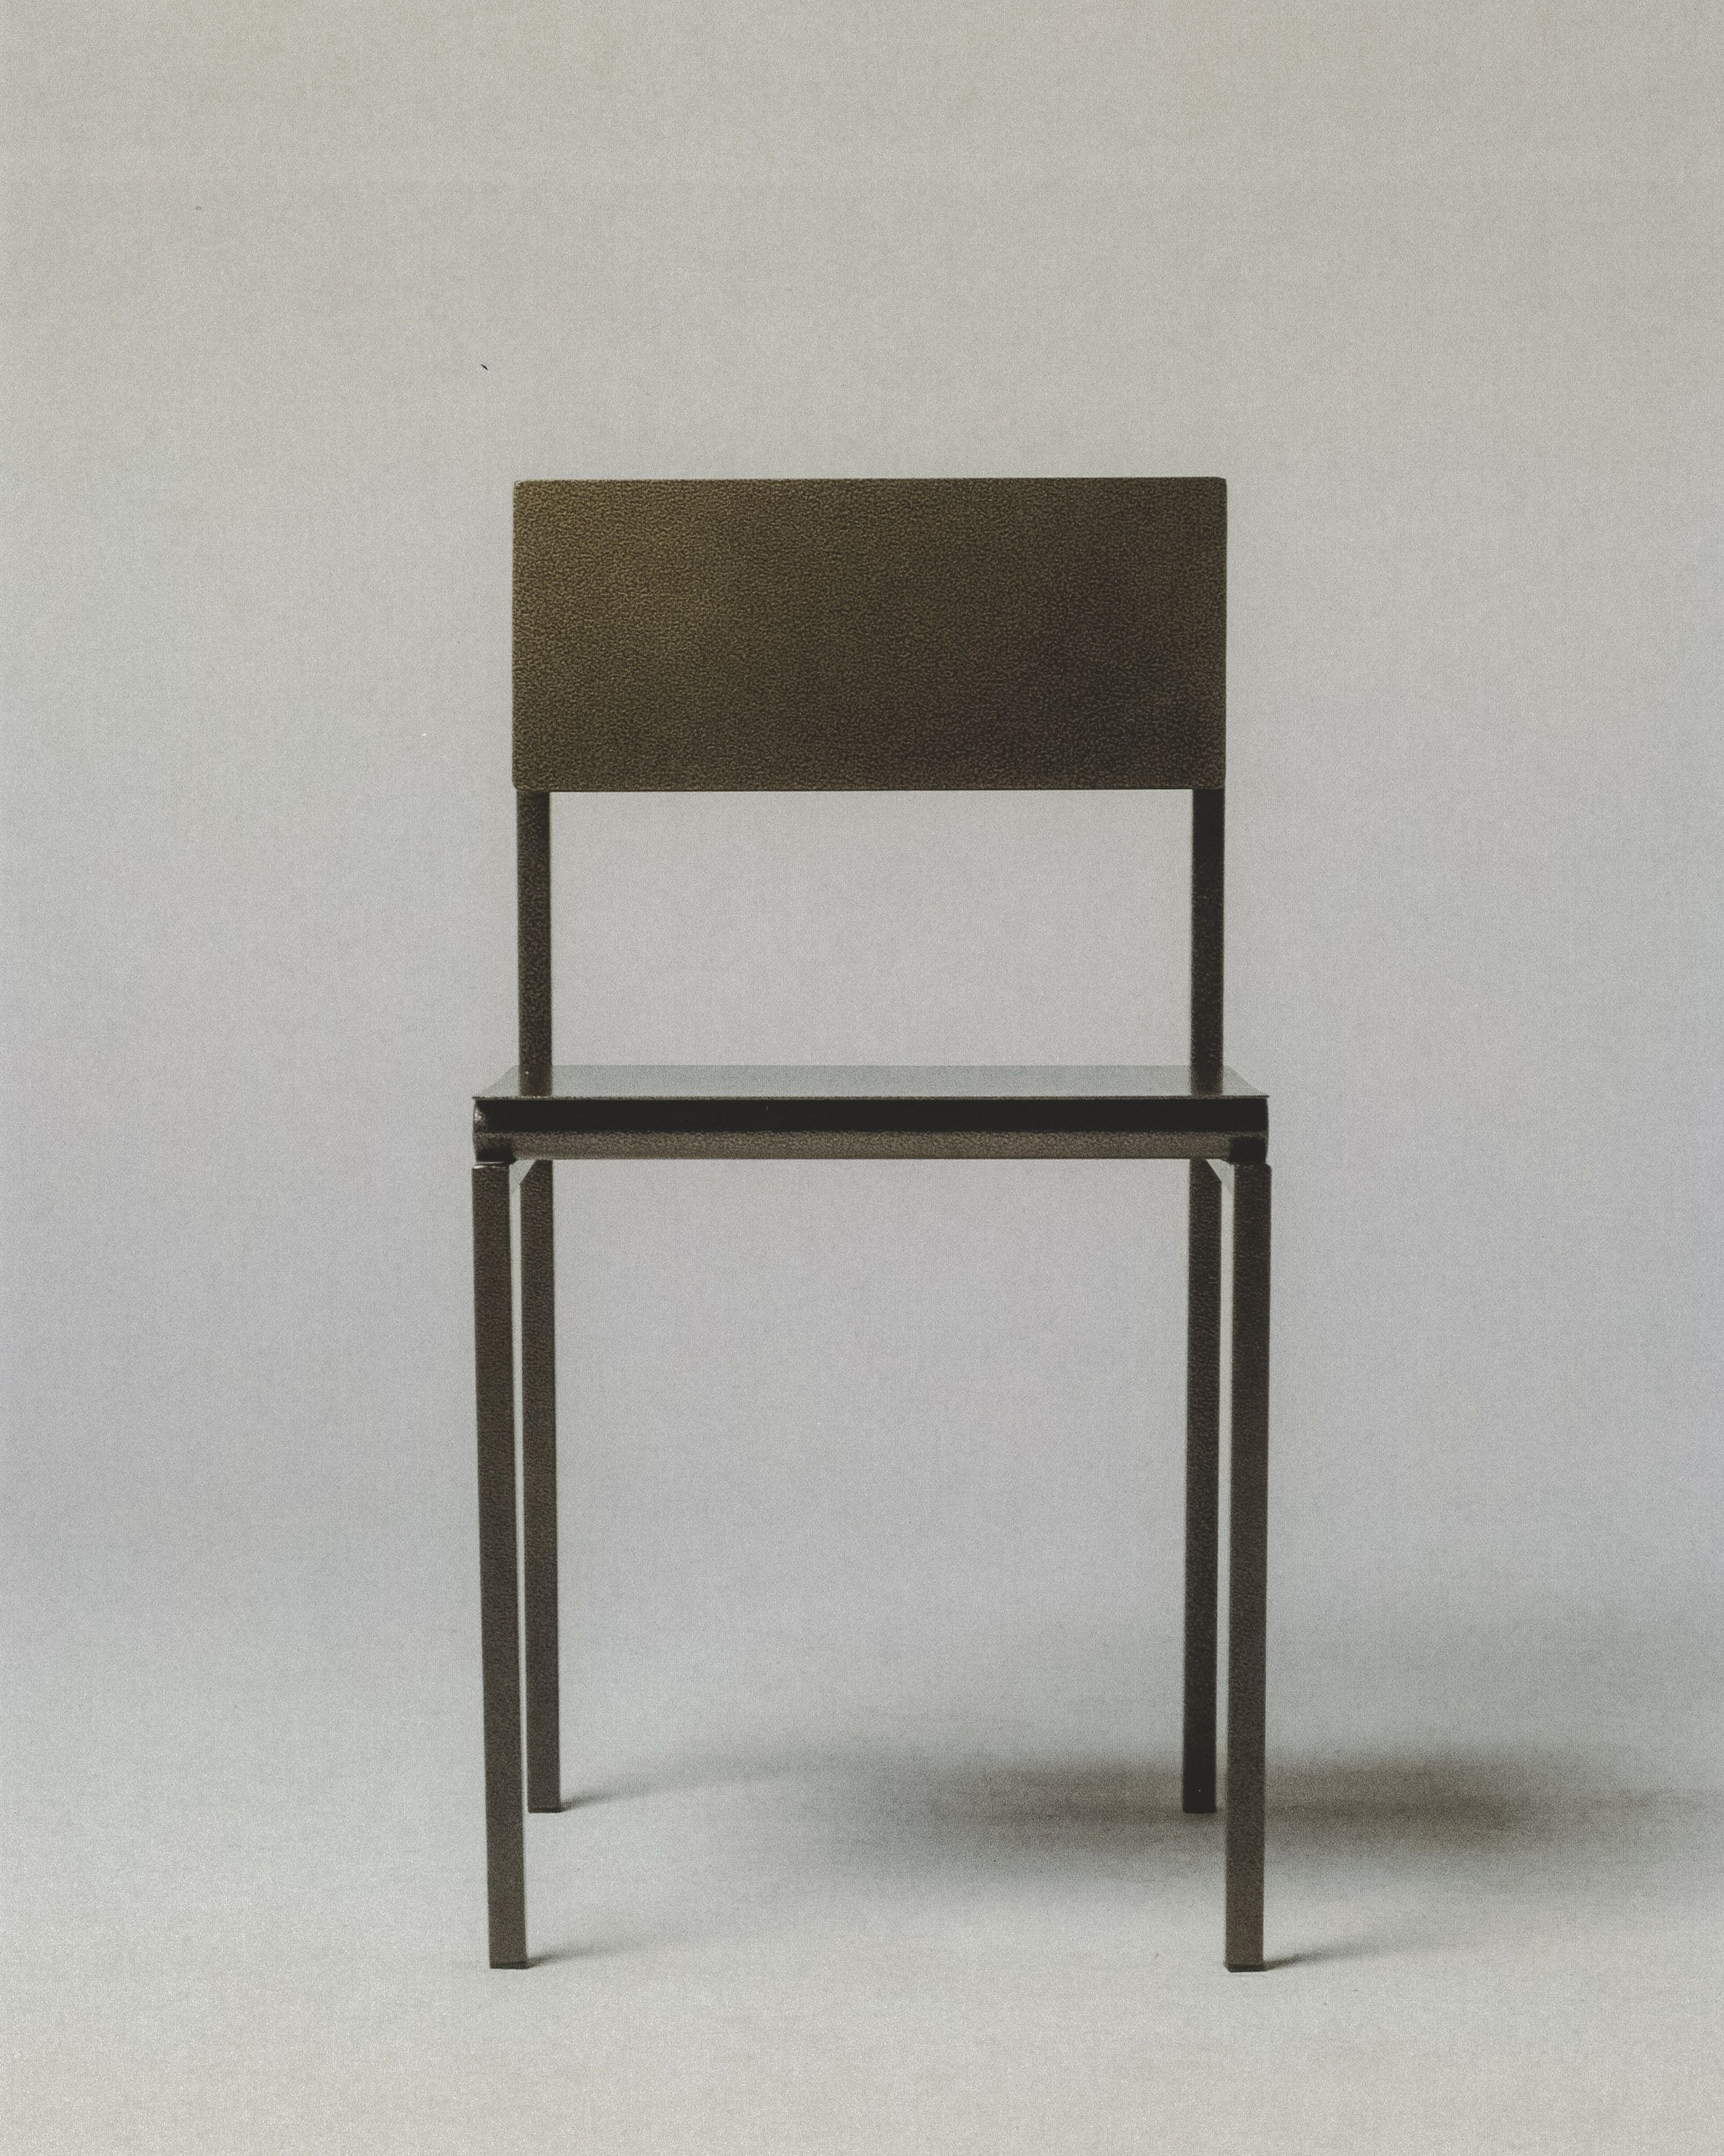 Suspension Metal Dining product image 4